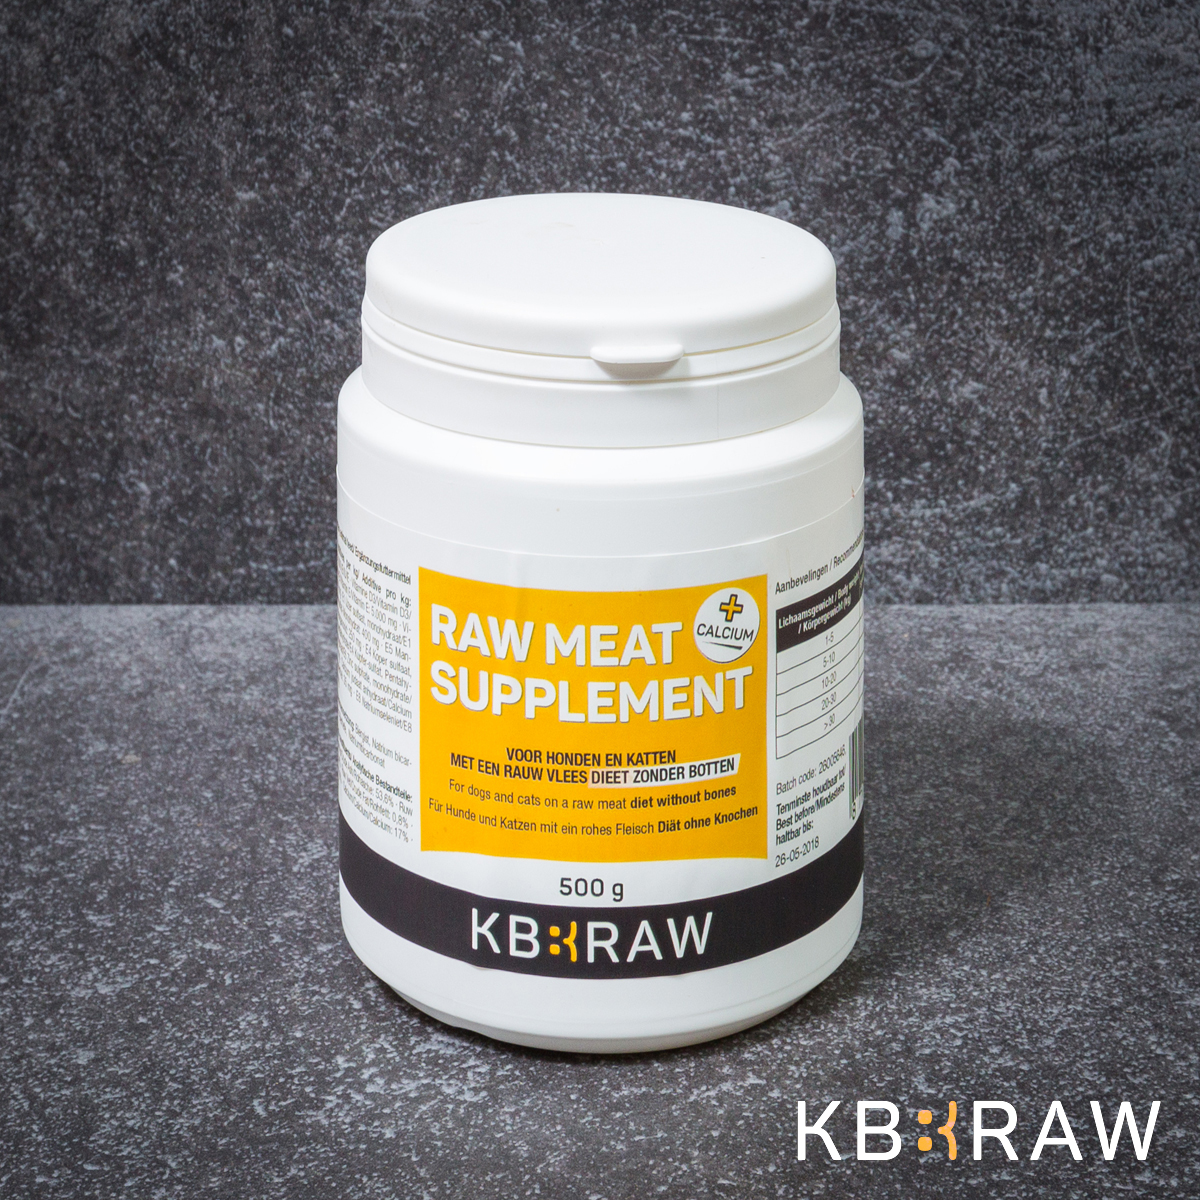 KB EXTRA - RAW MEAT SUPPLEMENT + CA